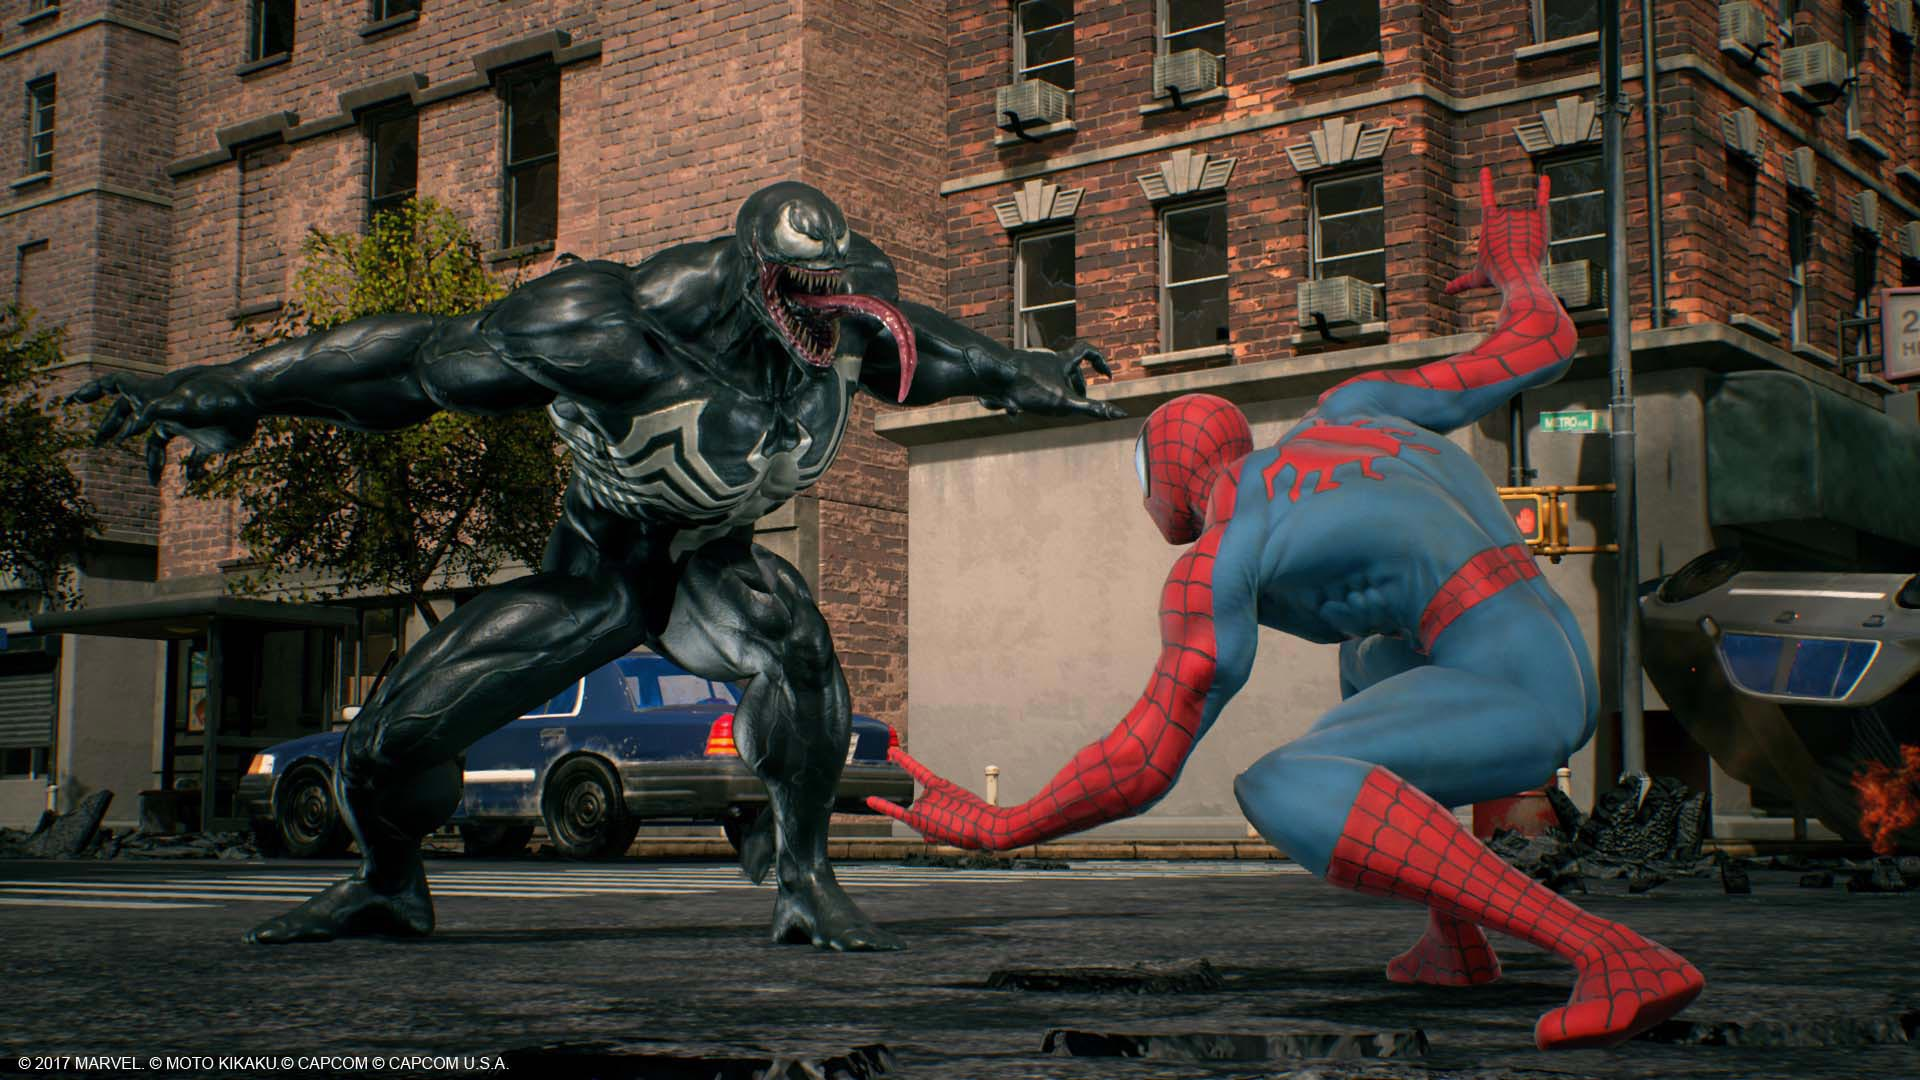 Venom, Black Widow, and Winter Solider in Marvel vs. Capcom: Infinite screenshots 12 out of 13 image gallery